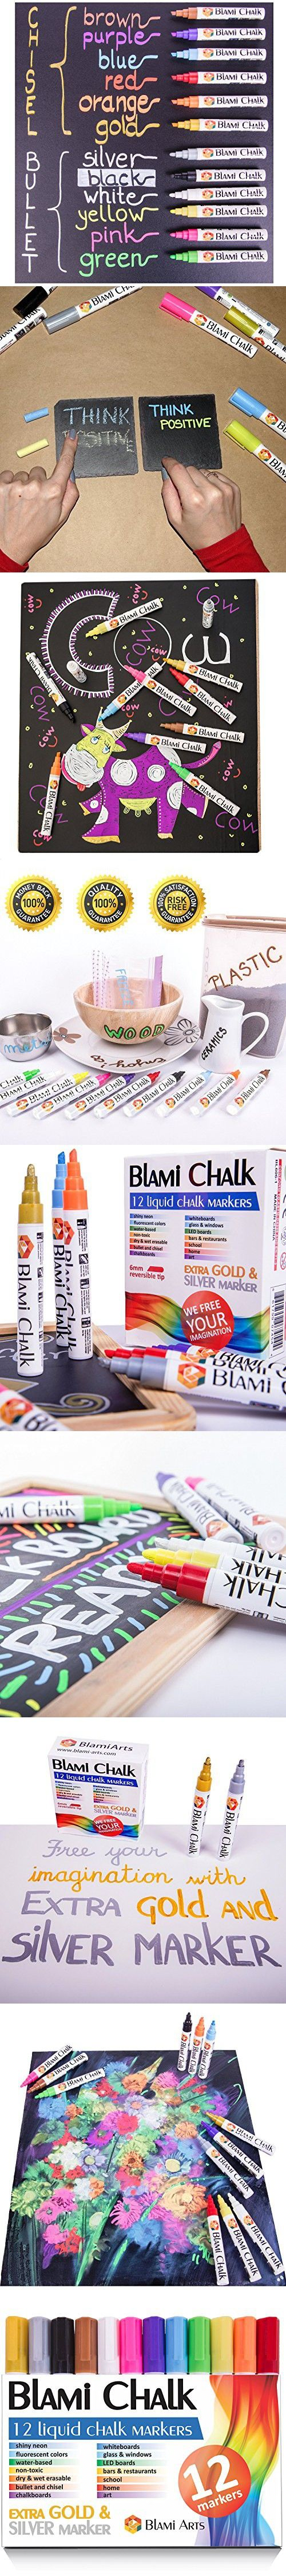 Blami Arts Chalk Markers with FREE gold and silver ink pen. Set of 12 shiny neon liquid chalk pens with reversible bullet and chisel fine tip. Free Your Imagination with chalkboard markers Now!